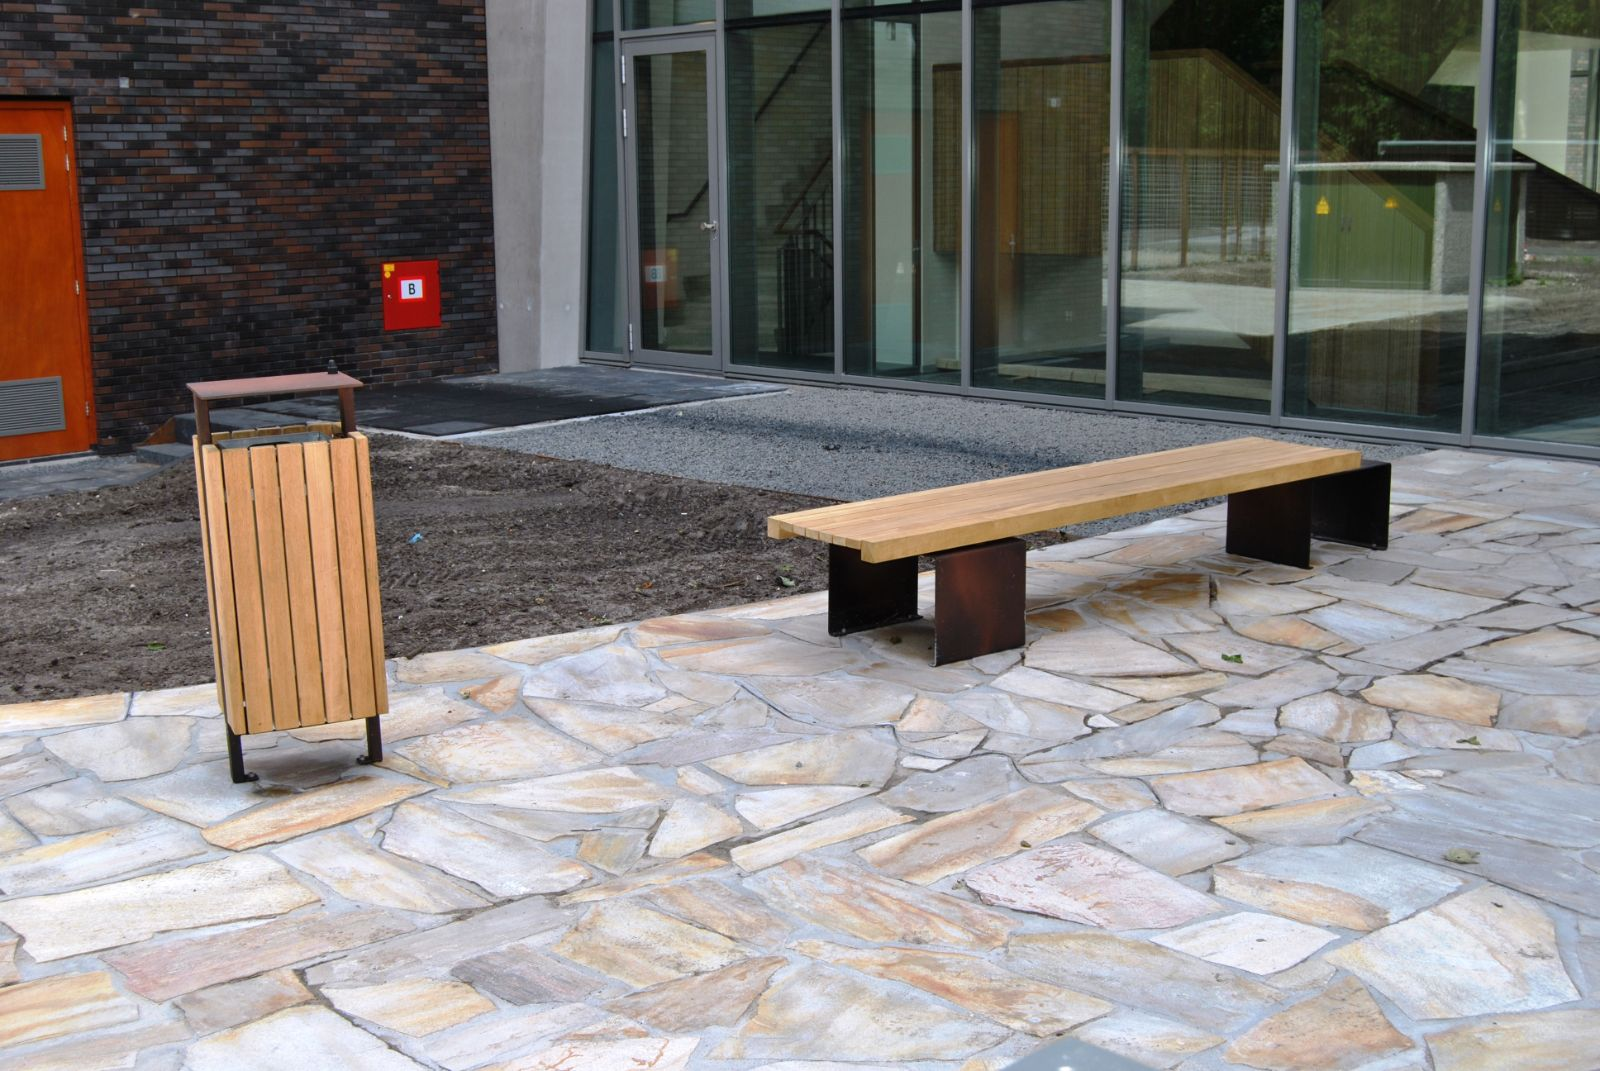 euroform w - urban furniture - park bench - seating wood - Linea 387